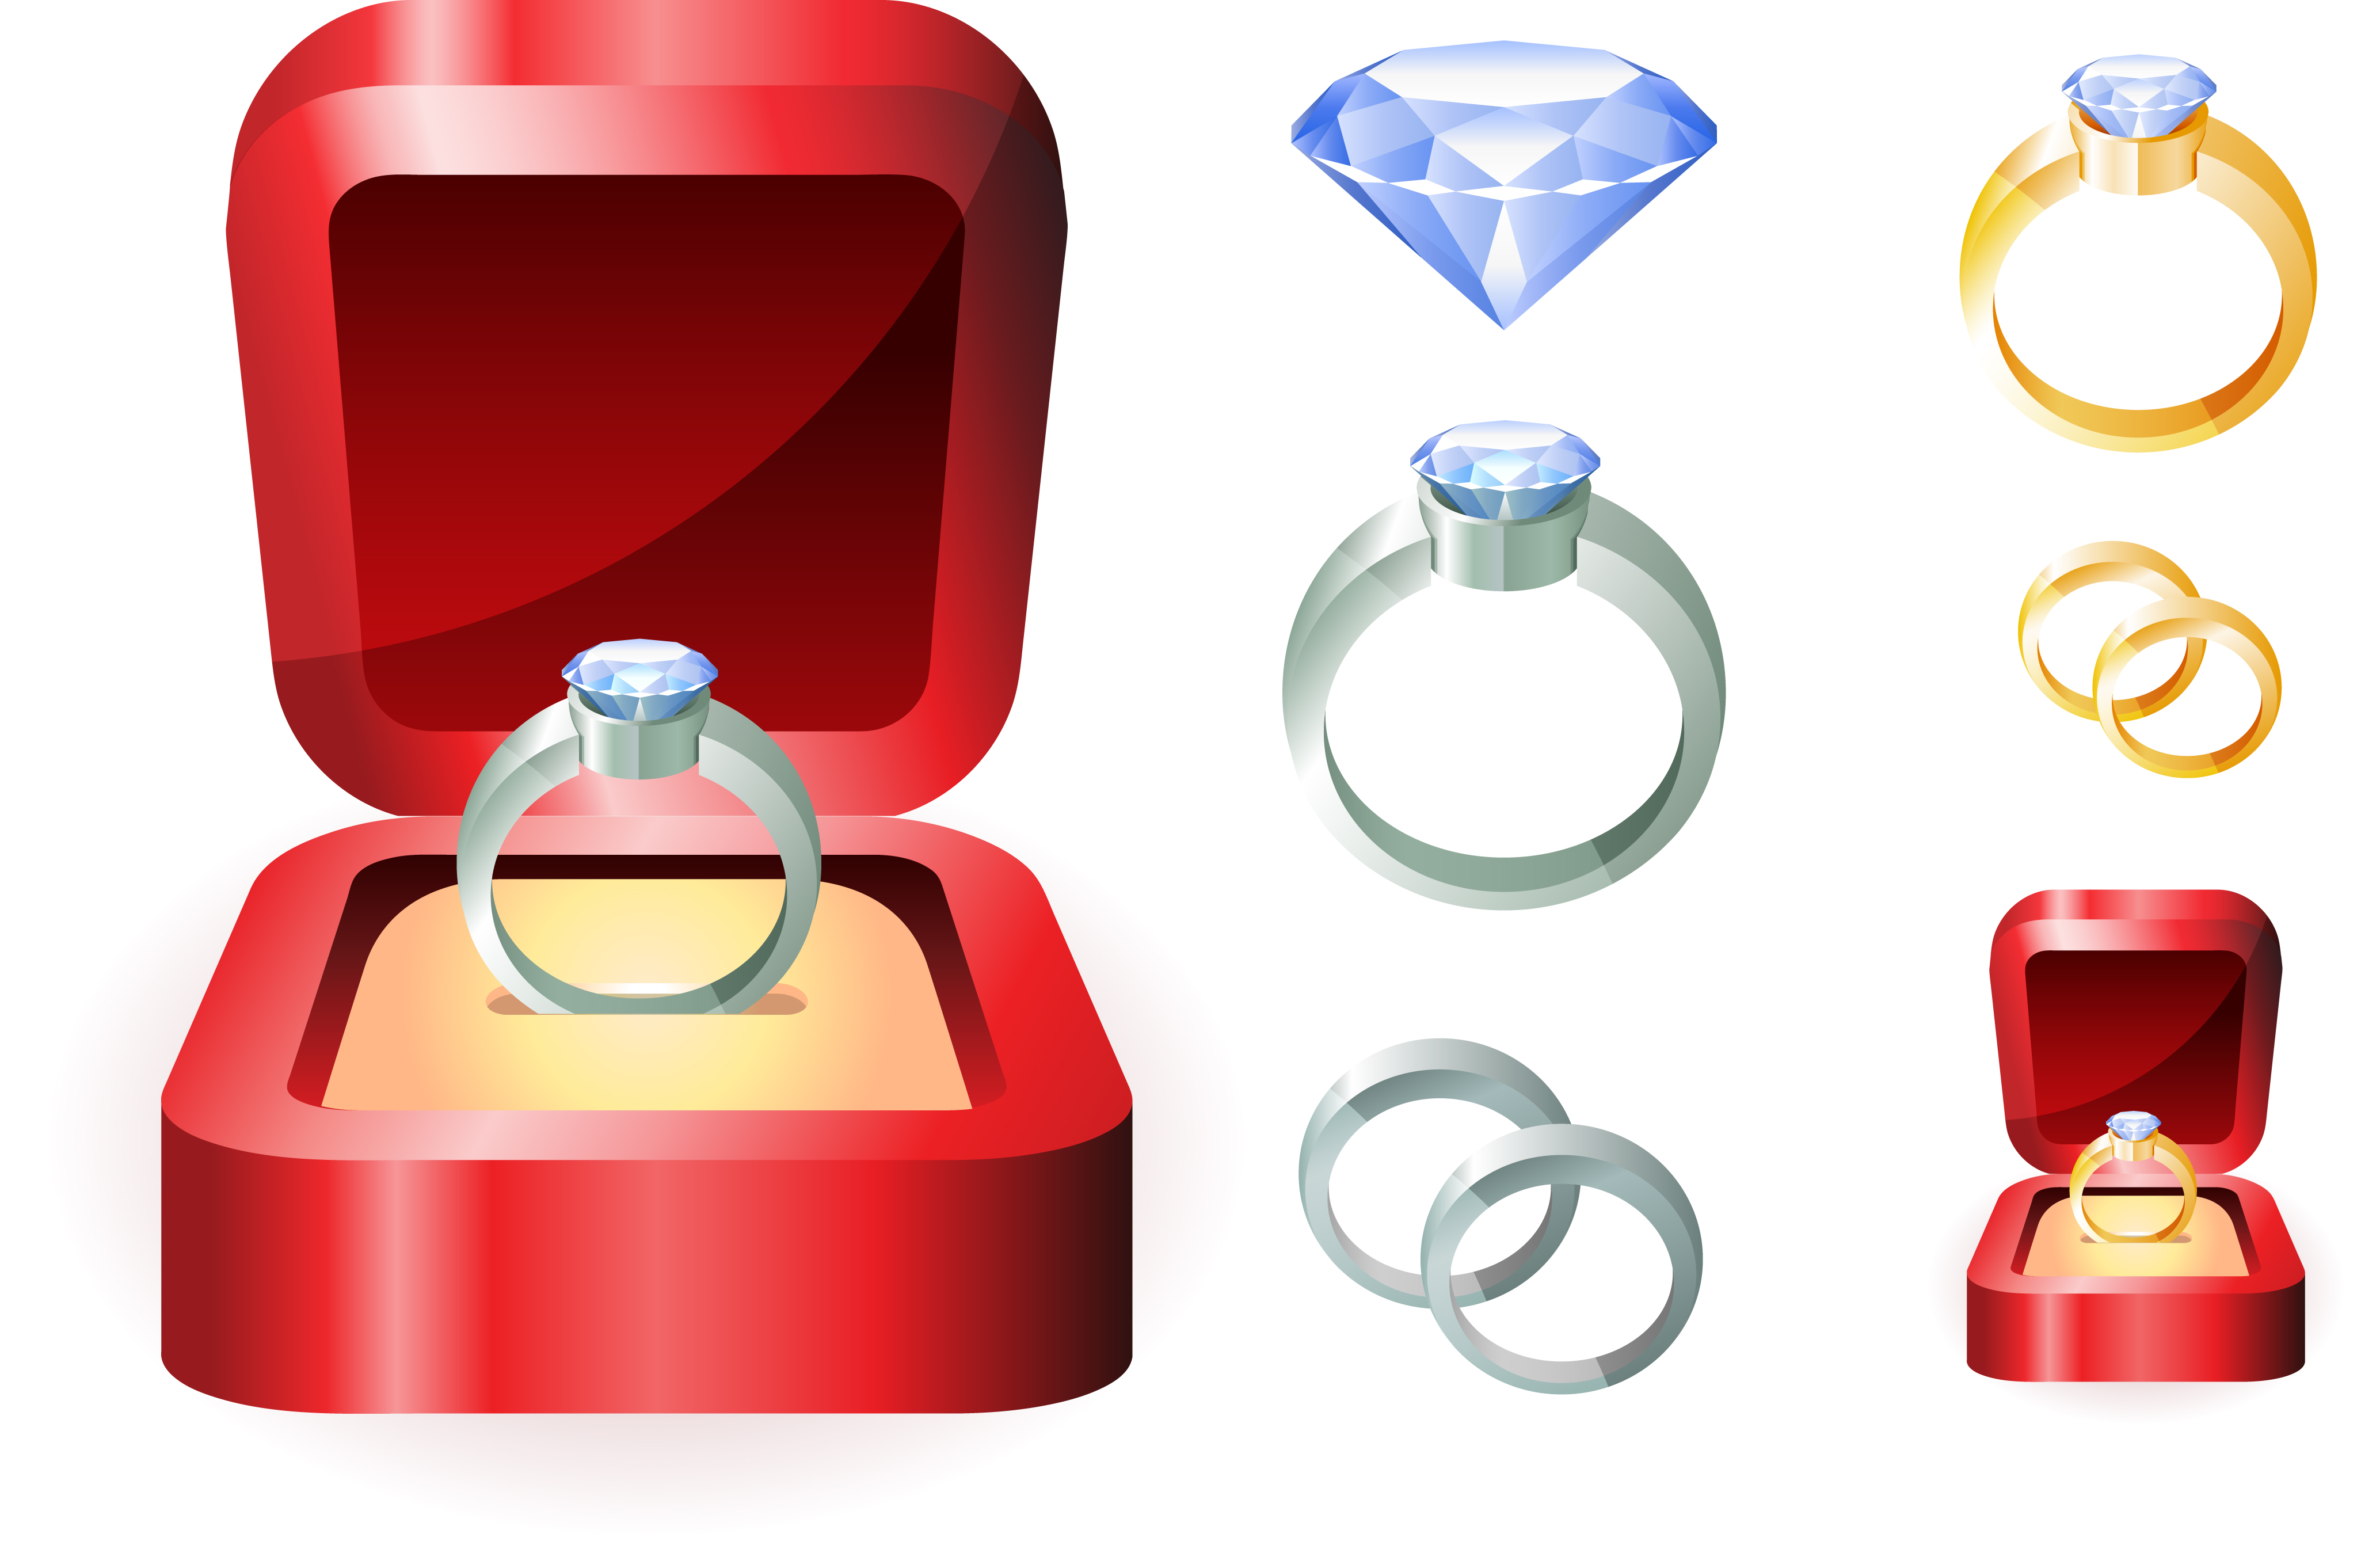 Engagement ring wedding ring engagement clip art rings 3